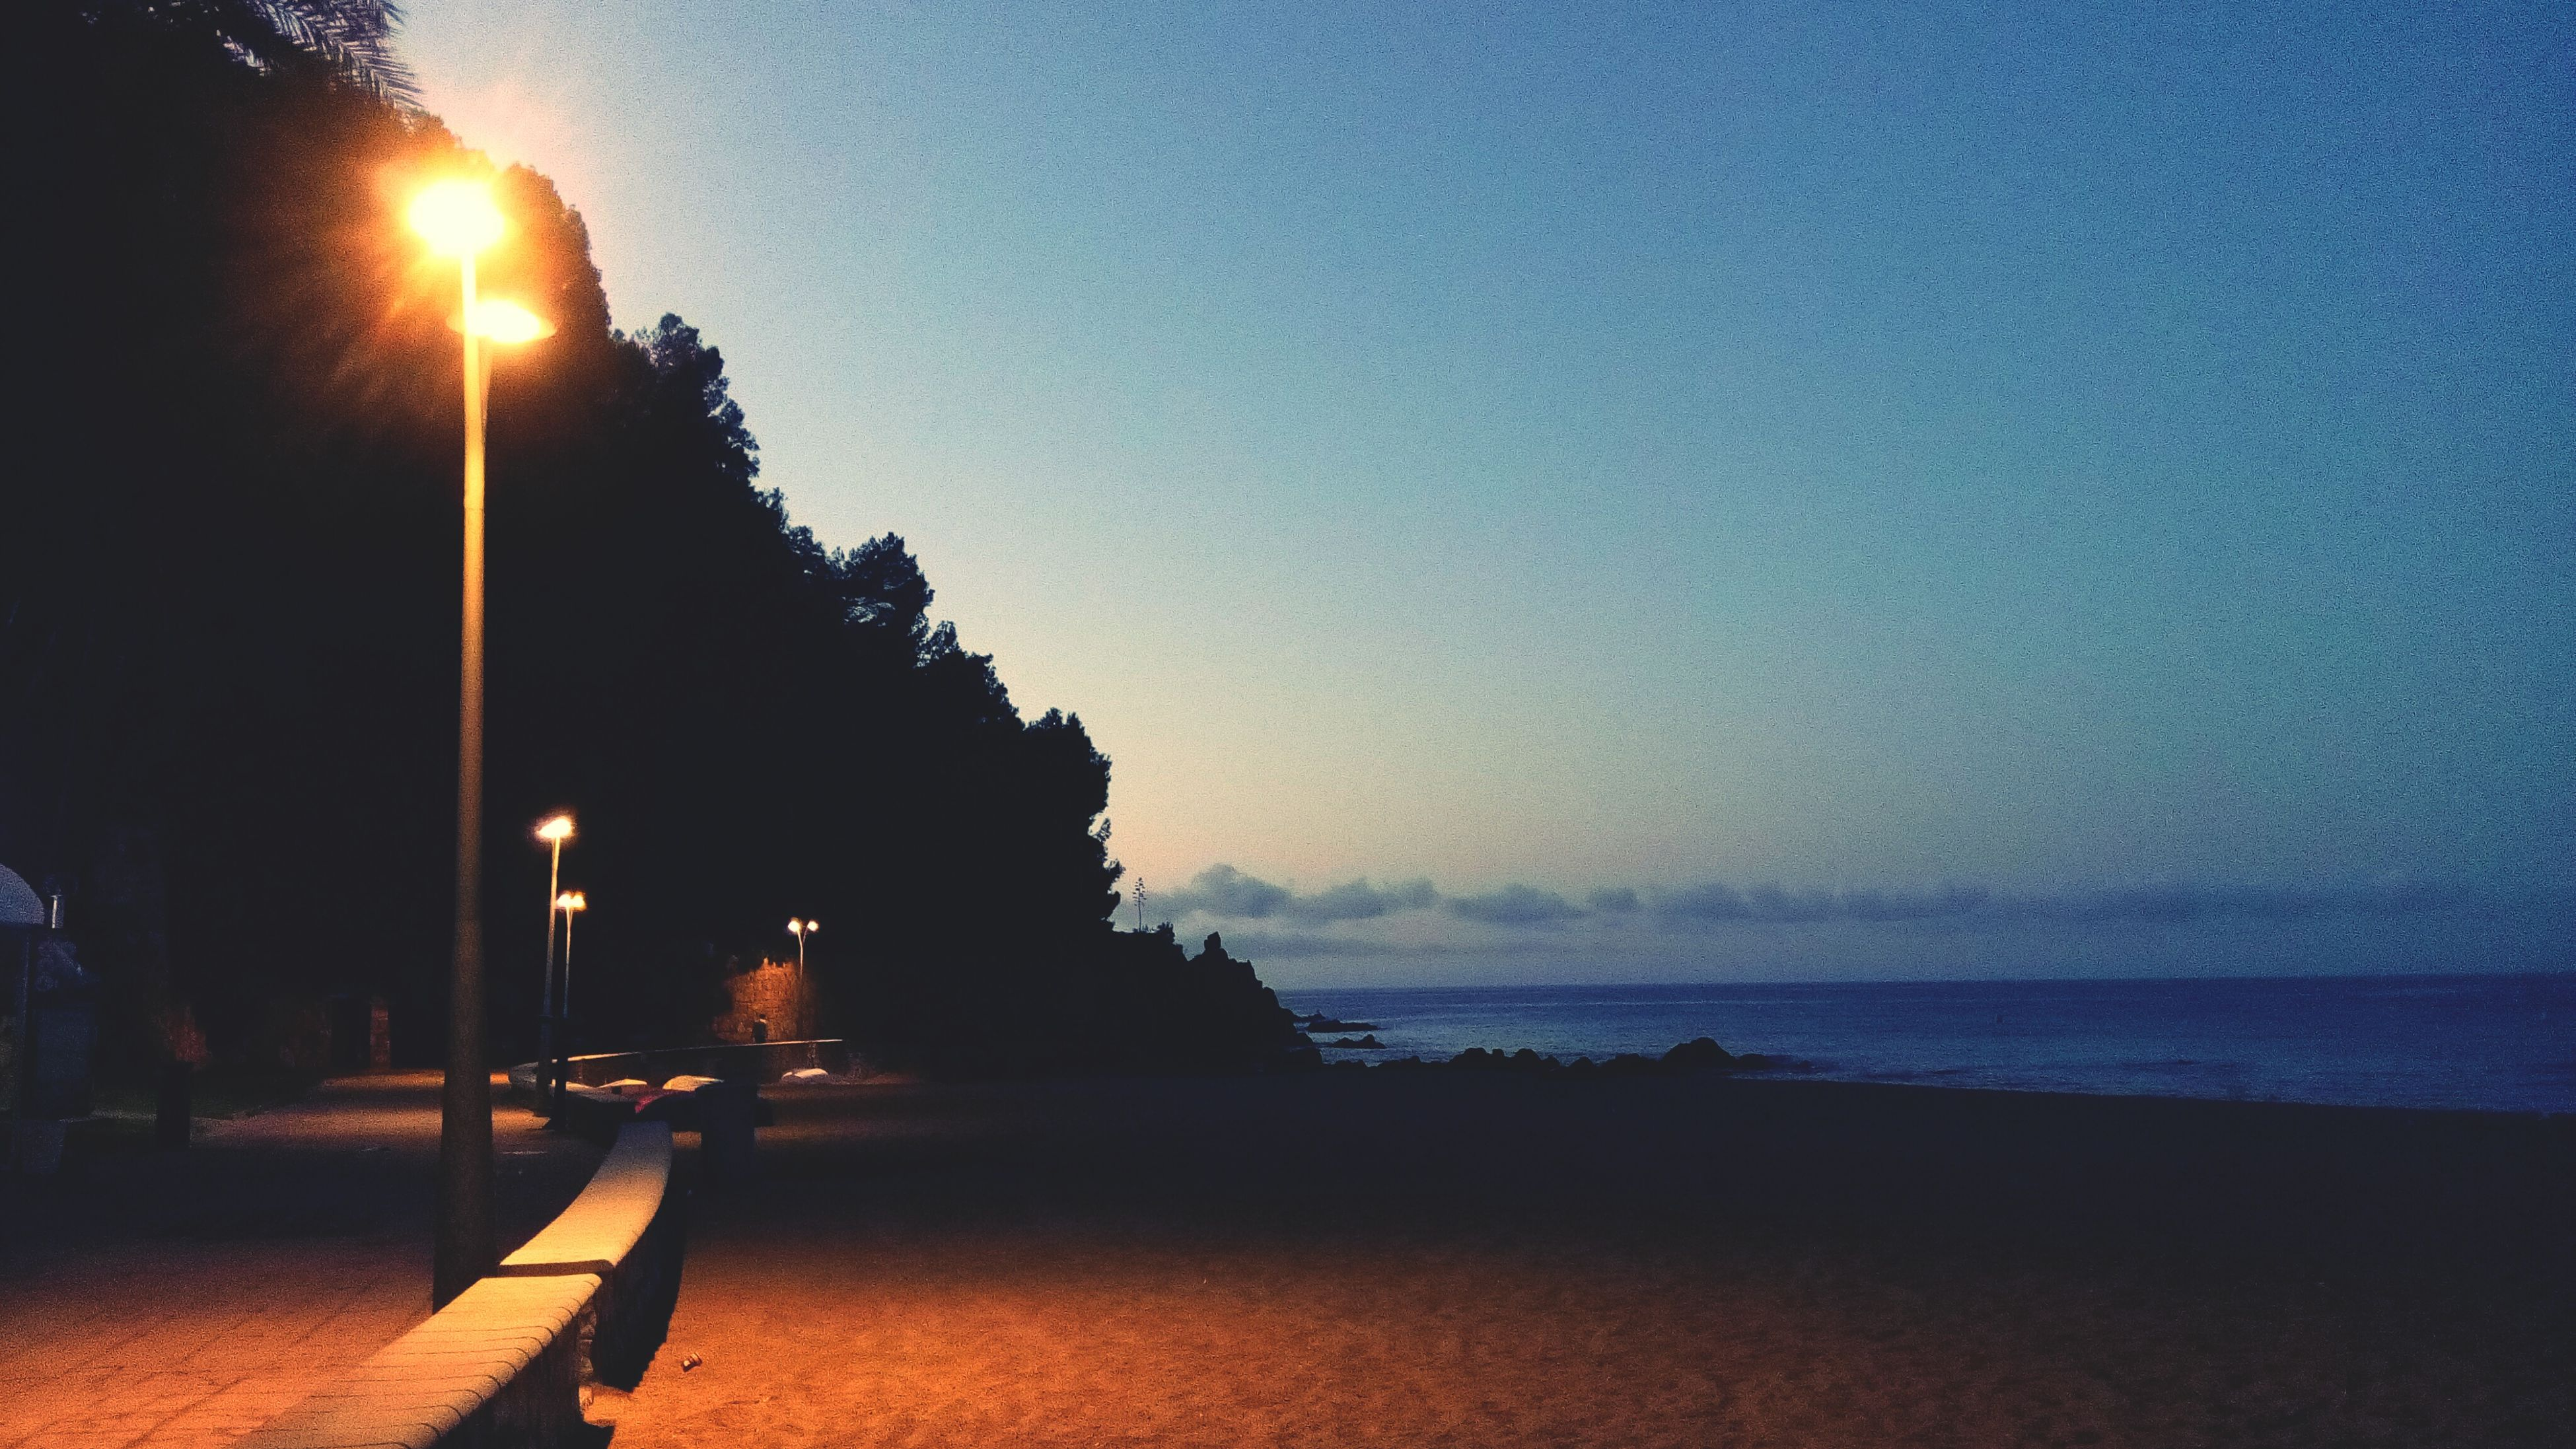 sea, water, clear sky, sun, building exterior, sunset, built structure, sky, street light, illuminated, beach, copy space, architecture, horizon over water, sunlight, tranquility, tranquil scene, shore, nature, scenics